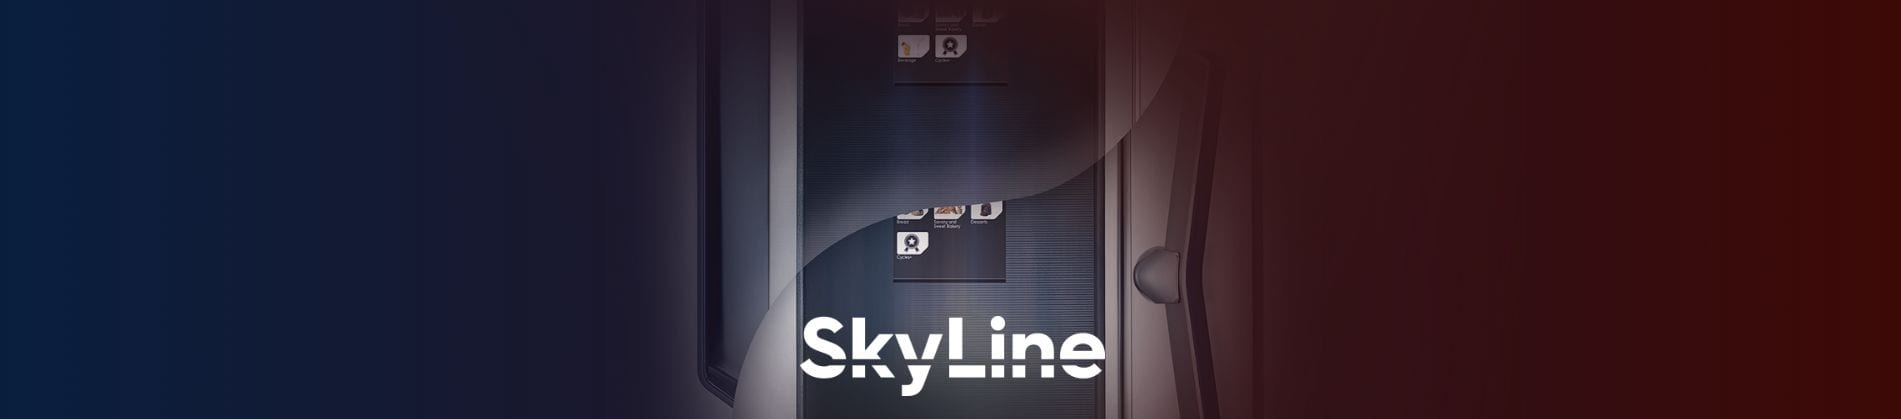 skyline cook and chill soluzione